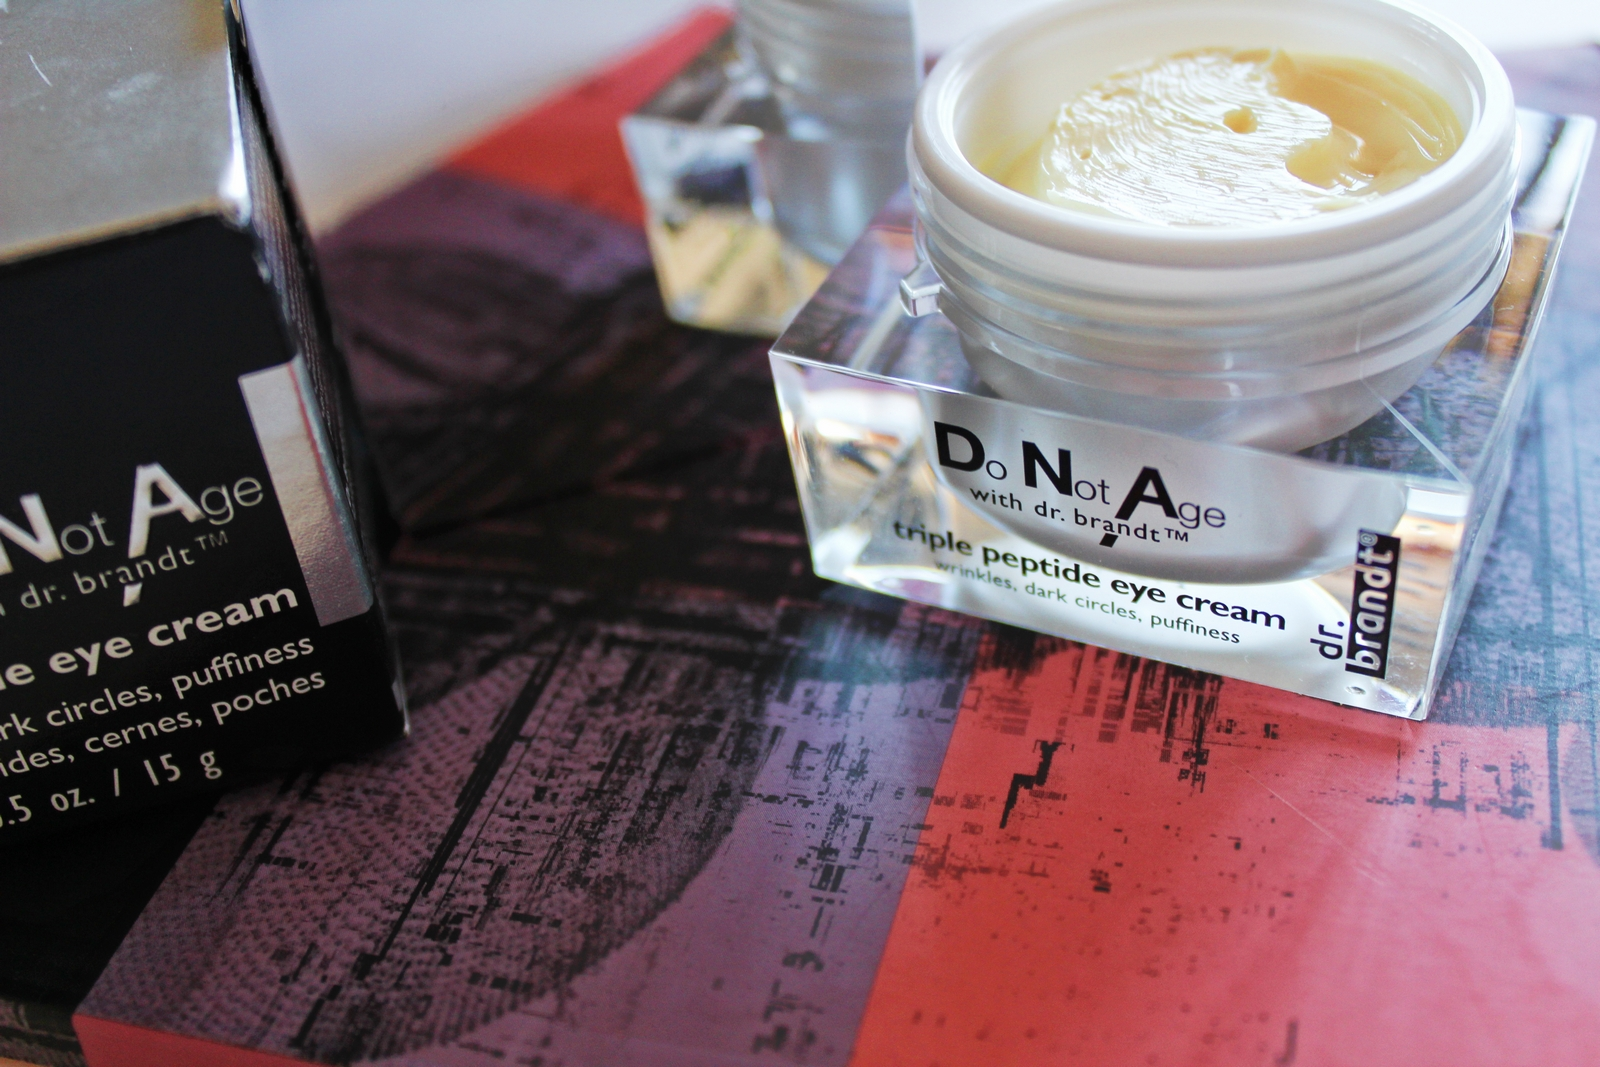 Dr. Brandt® Do Not Age with Drbrandt Triple Peptide Eye Cream uploaded by Paola A.